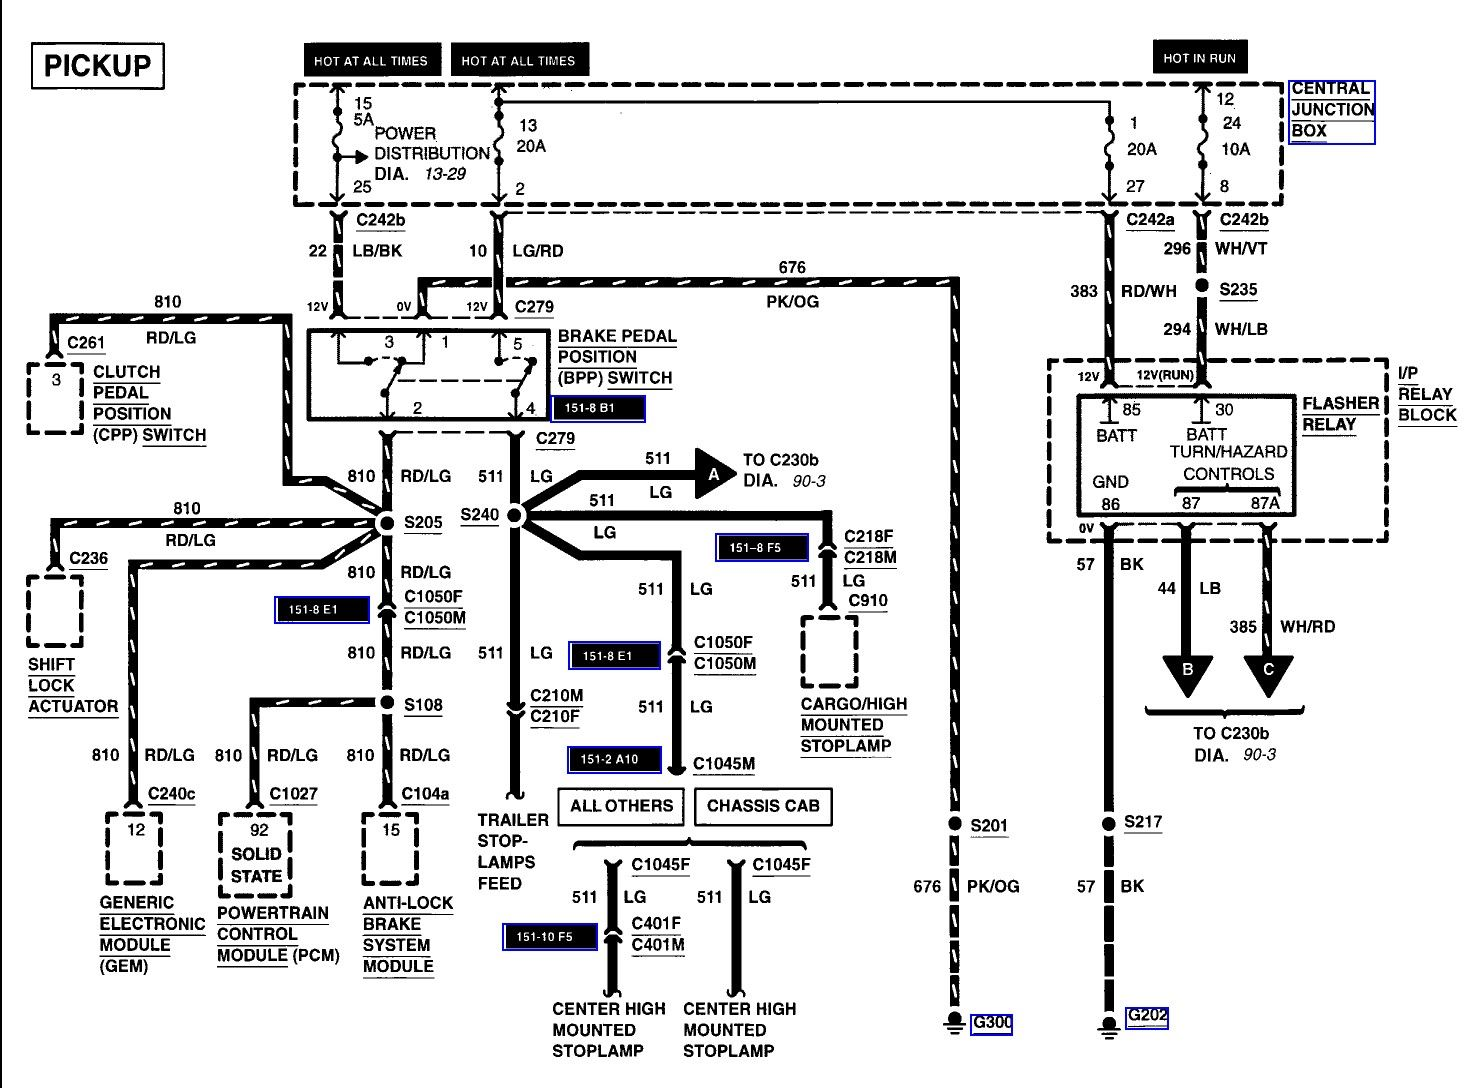 Ford 7 3 Idi Wire Schematic In 2020 Electrical Wiring Diagram Ford Ford Probe